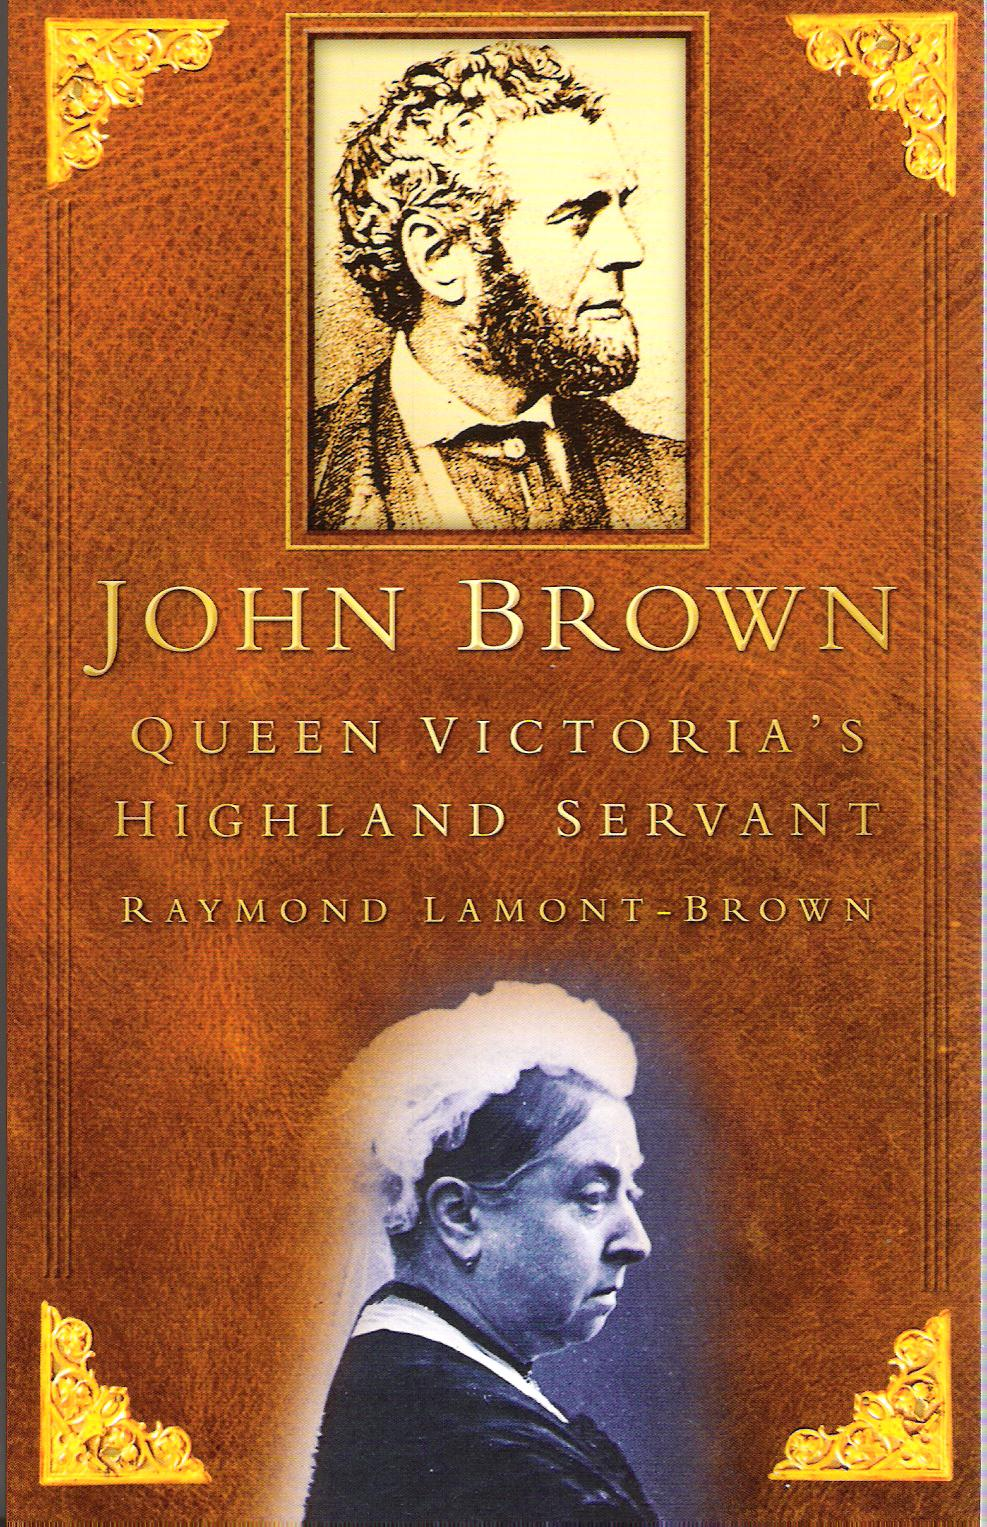 Image for John Brown, Queen Victoria's Highland Servant.